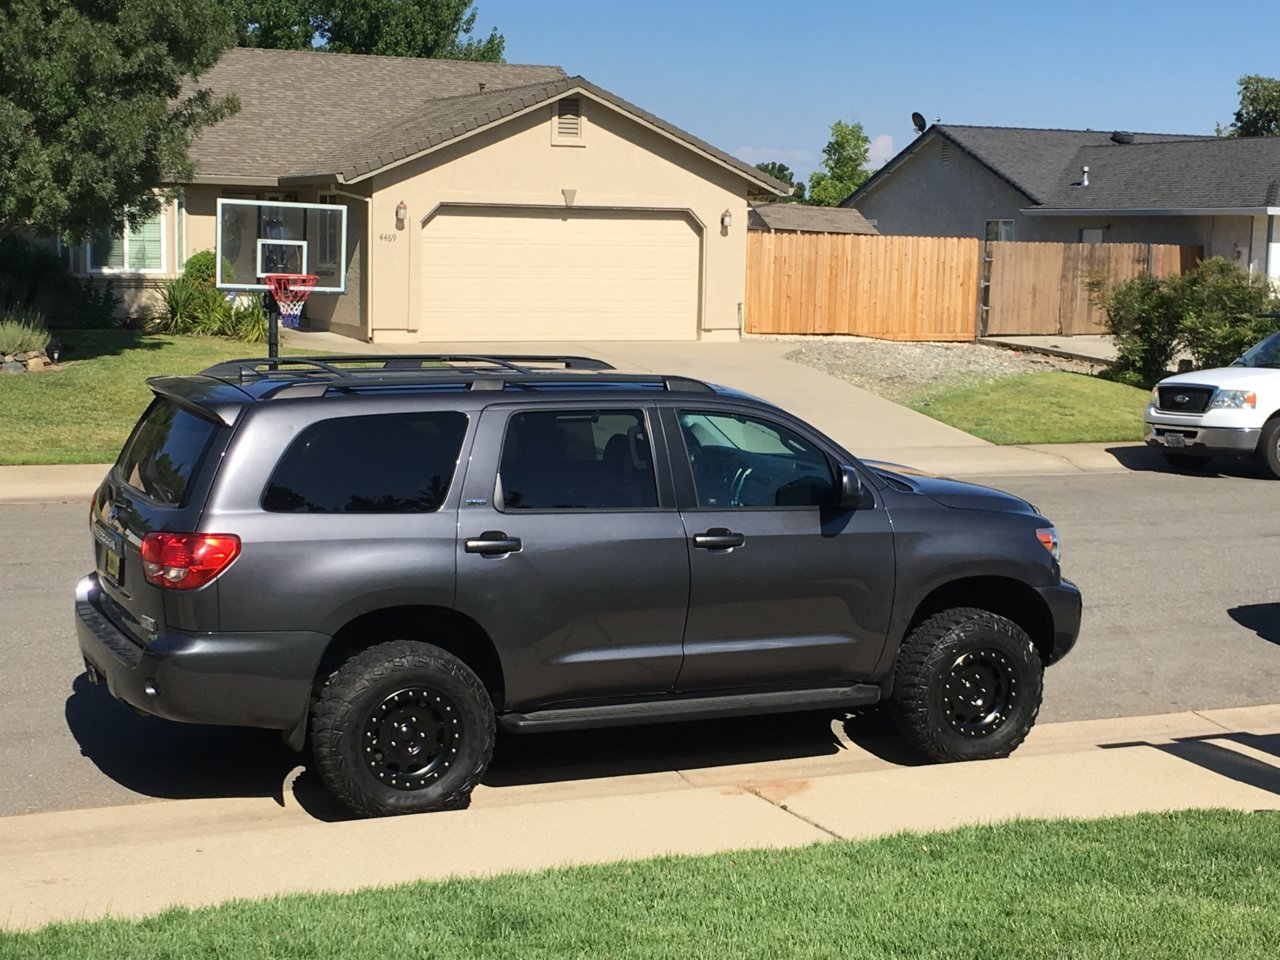 Theboy S 2013 Sequoia Build Thread Toyota Tundra Forum